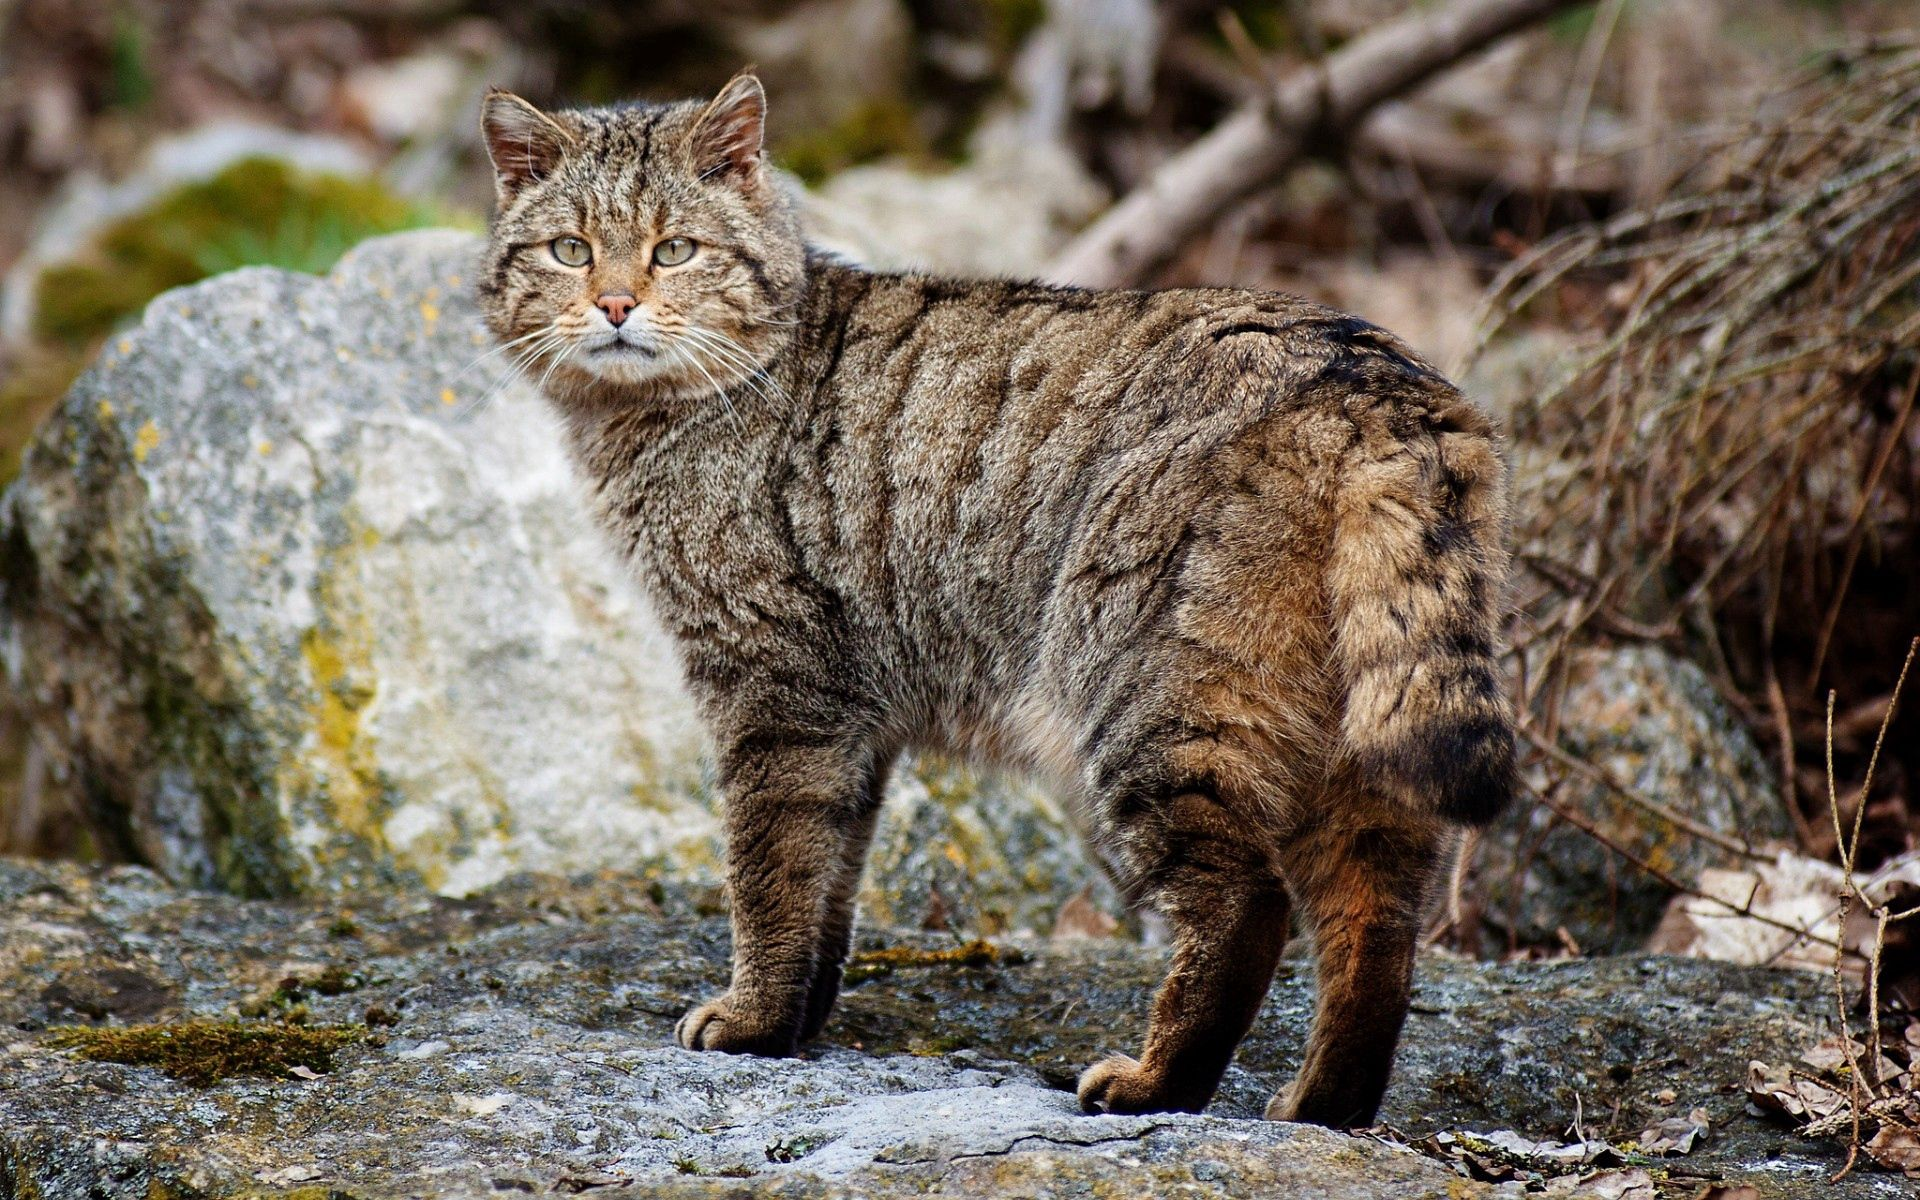 84919 download wallpaper Animals, Cat, Striped, Stroll, Stones screensavers and pictures for free